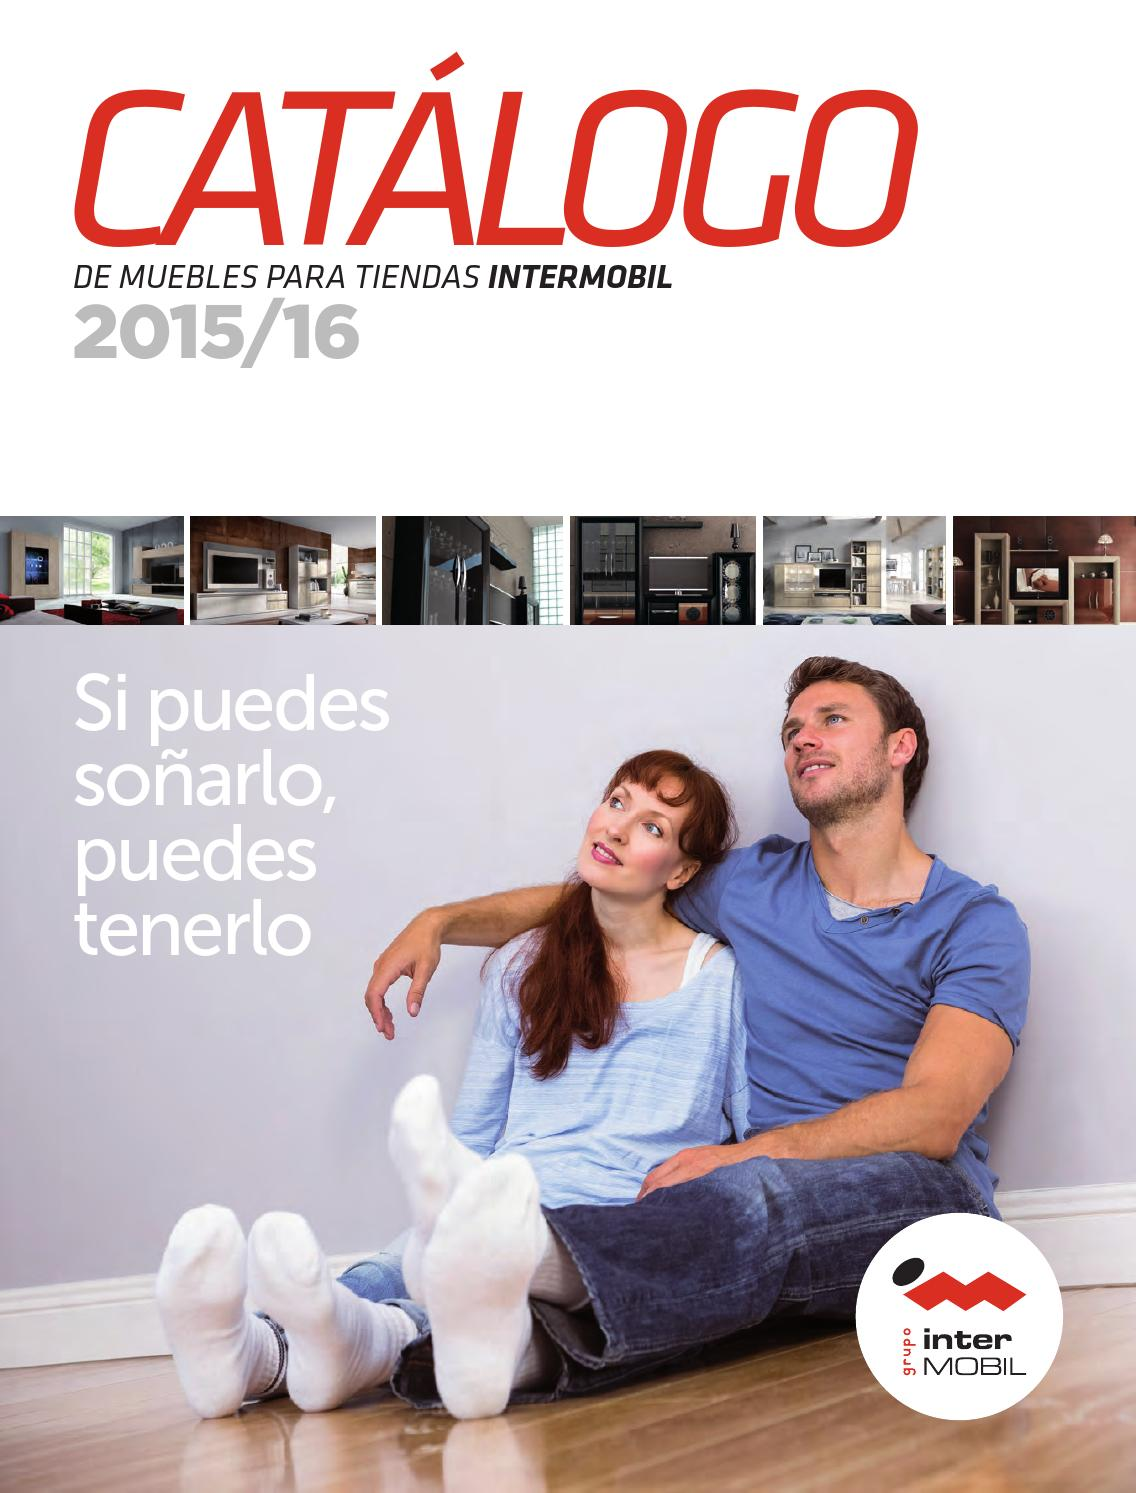 Muebles Mezquita Alcanices - Cat Logo Muebles Nebra Intermobil 2015 16 By Muebles Nebra [mjhdah]https://lookaside.fbsbx.com/lookaside/crawler/media/?media_id=1587000028028965